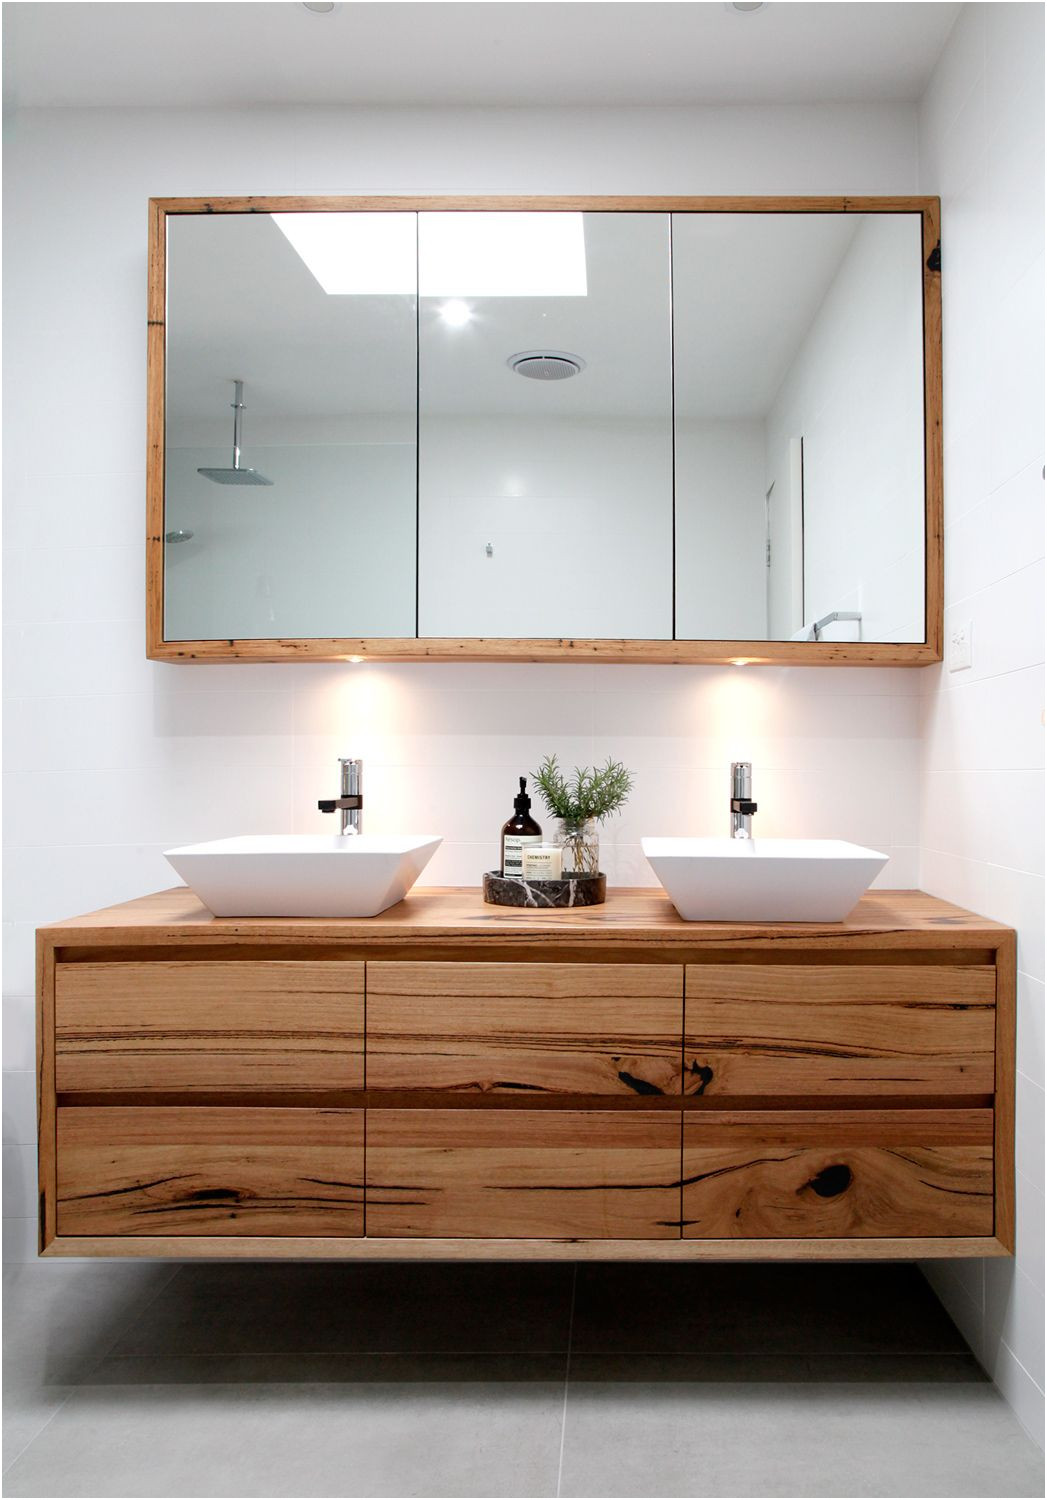 Custom Made Mirrored Bathroom Cabinets New Introducing the Iluka Wall Hung Recycled Timber Vanity